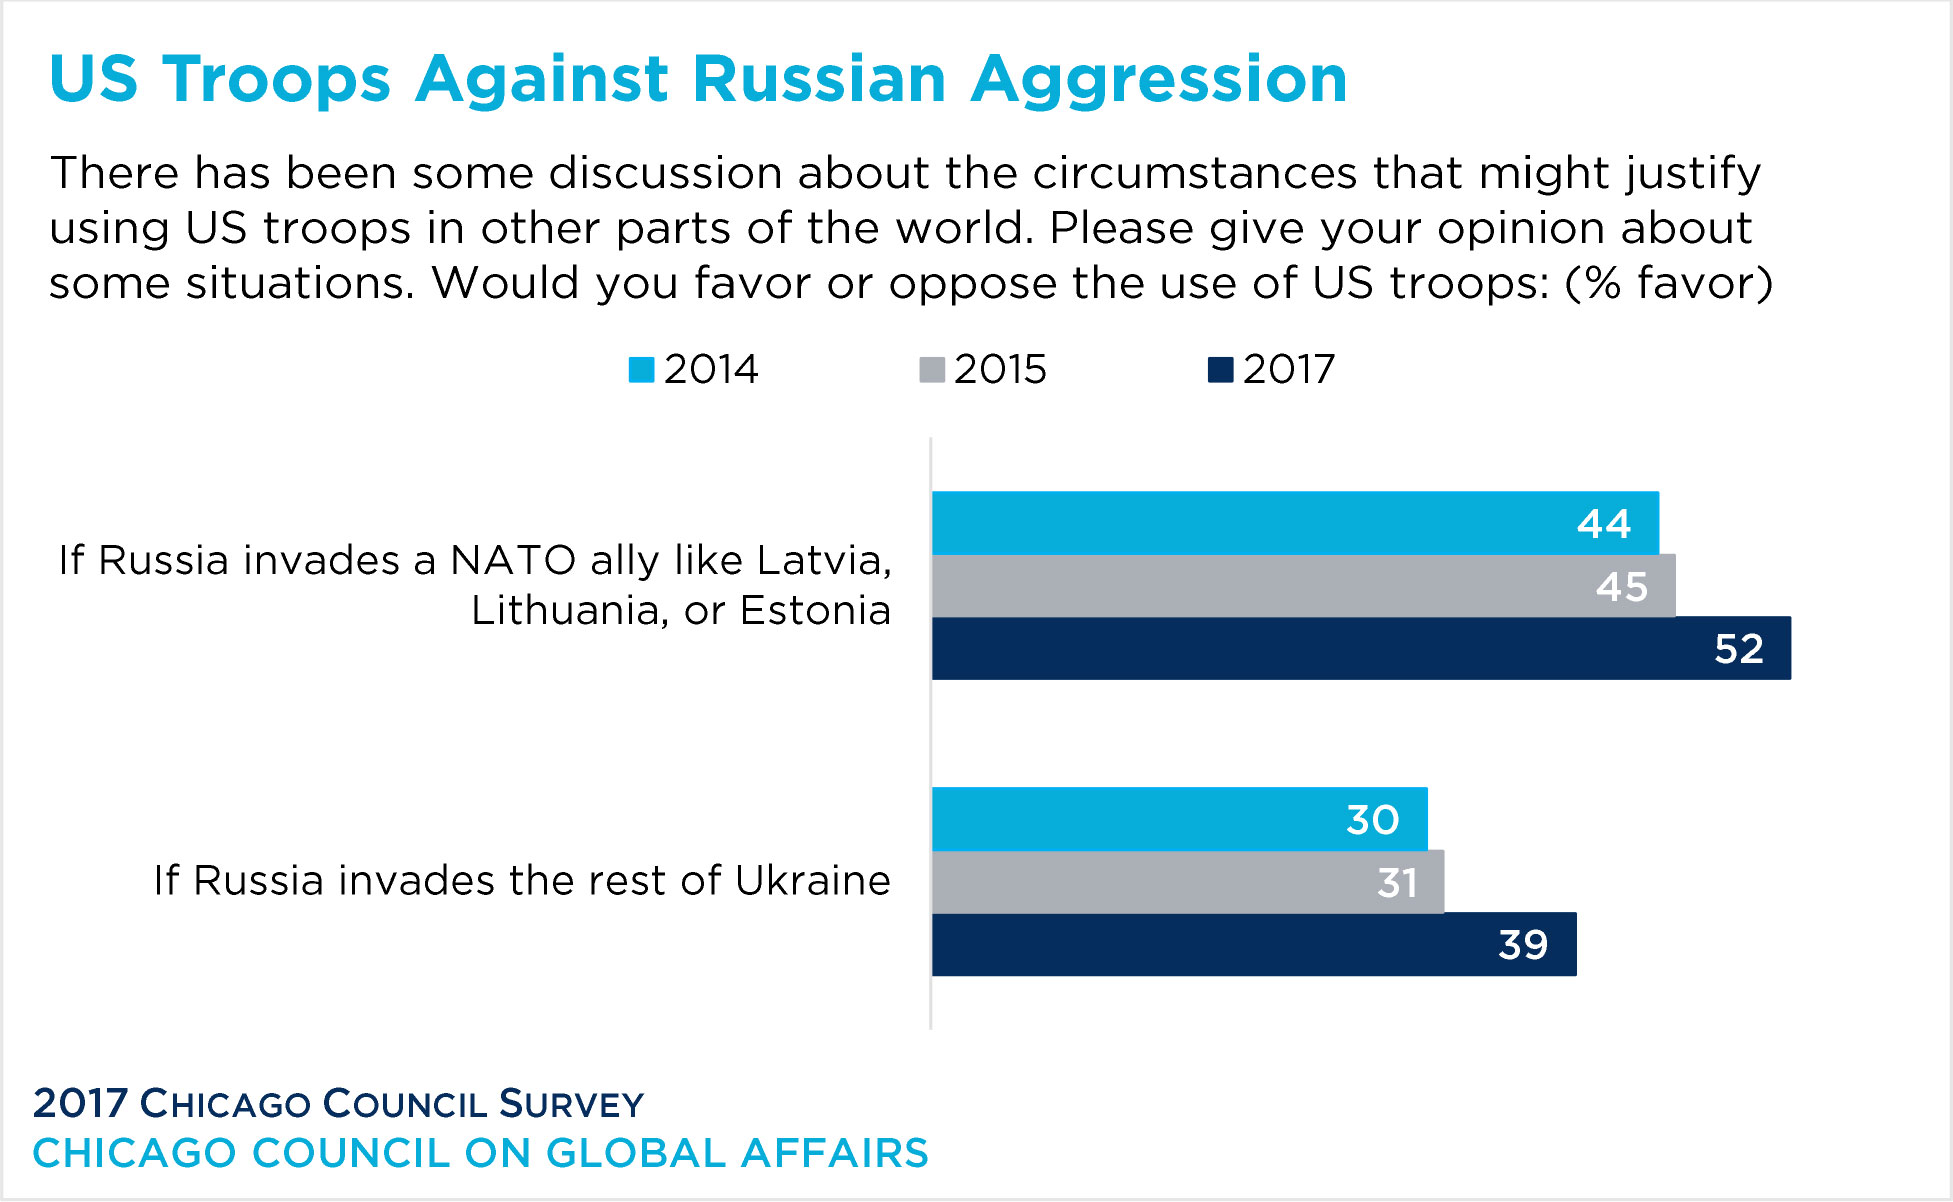 Bar graph showing public opinion of us troops against Russian aggression